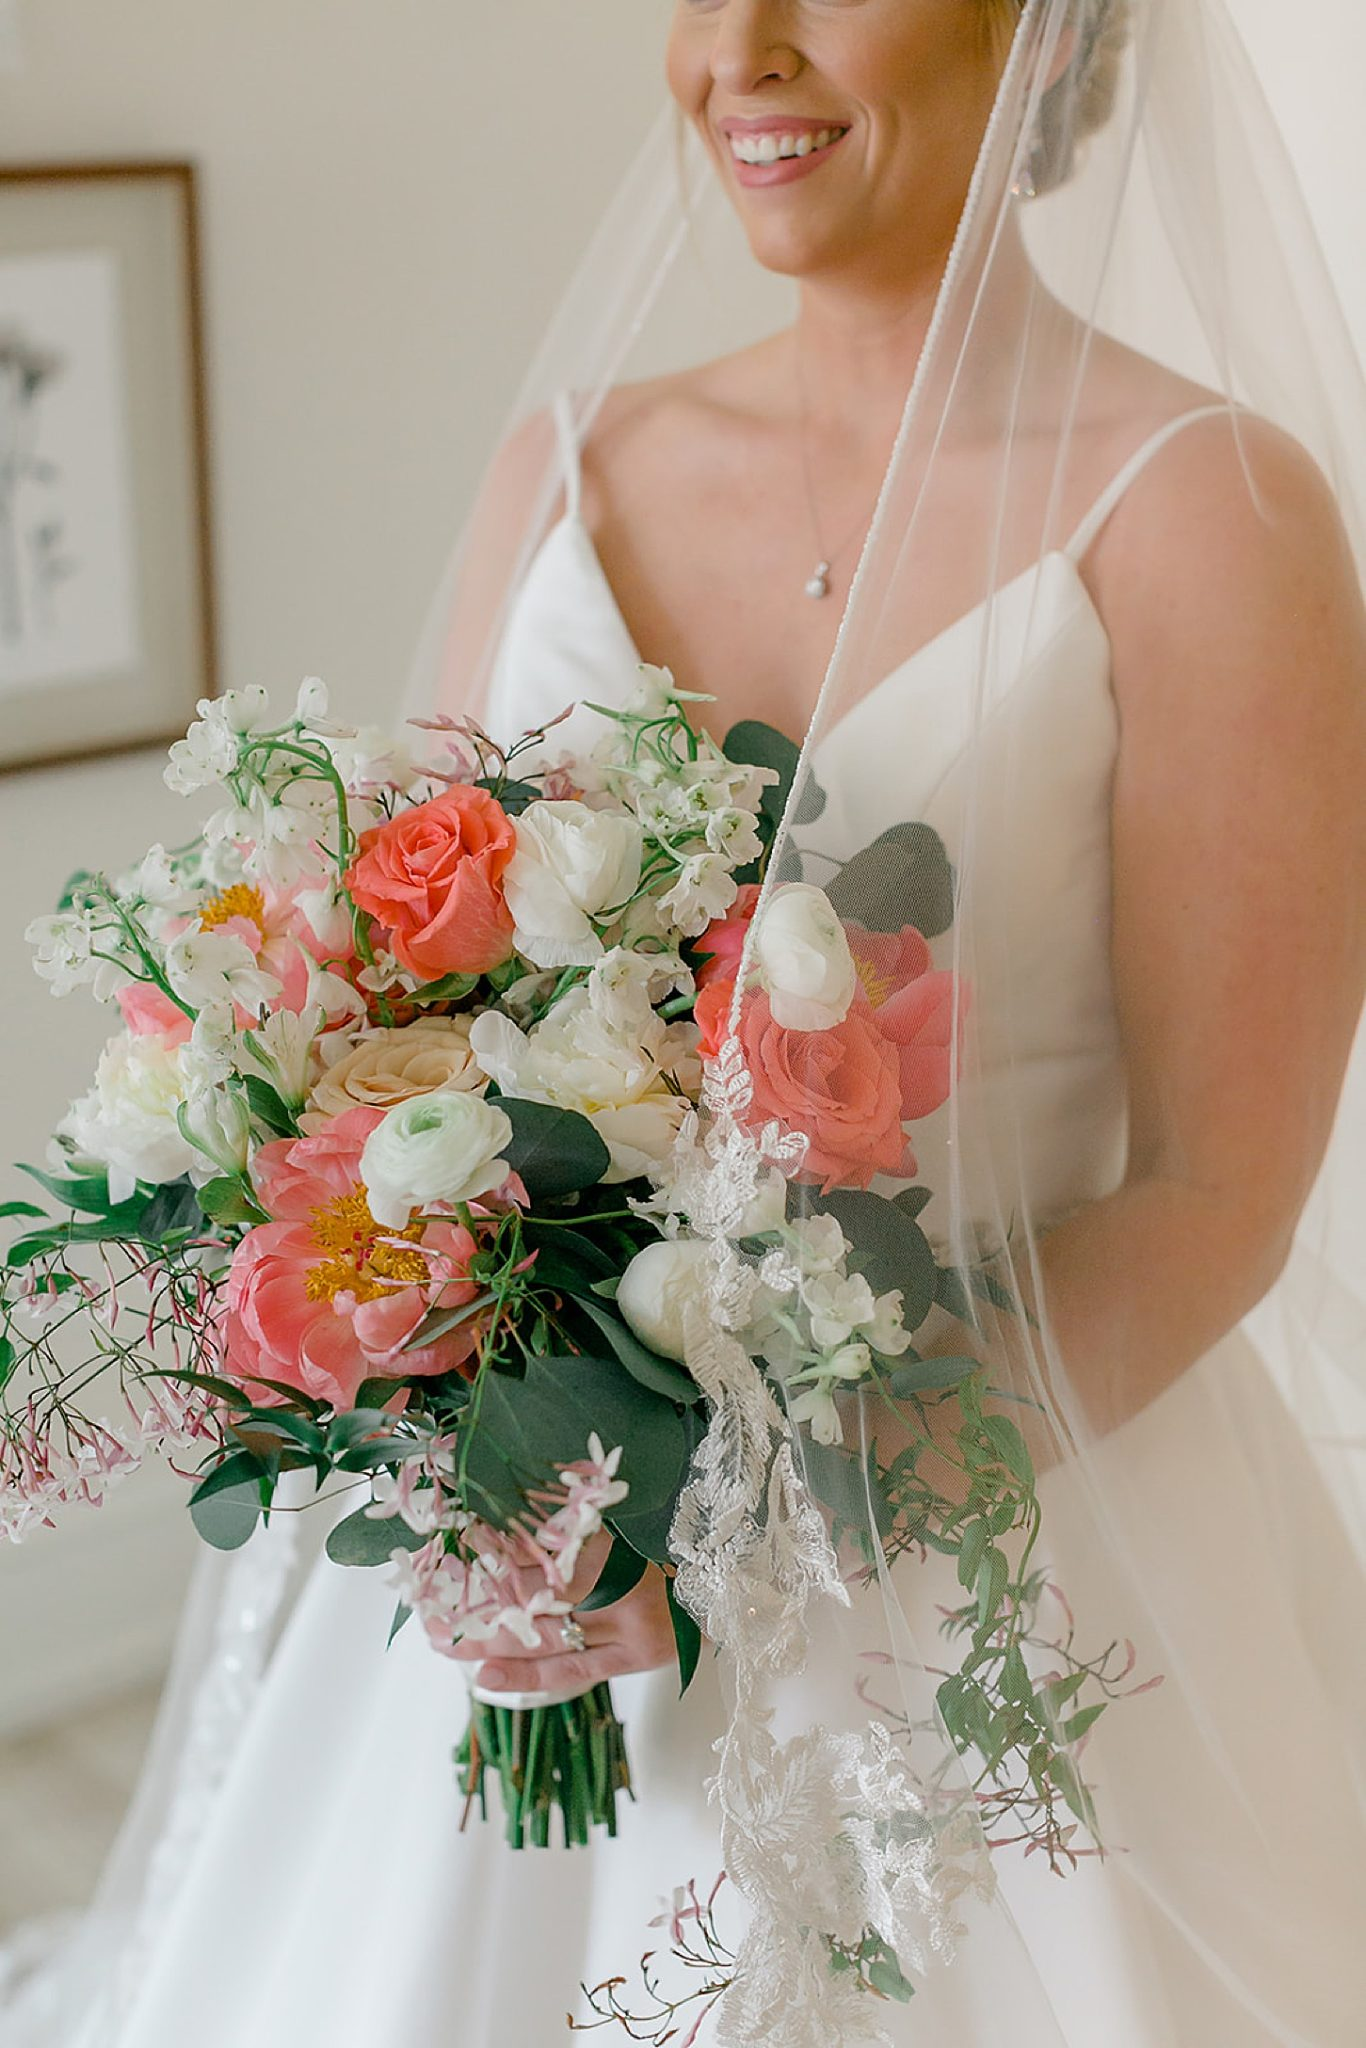 Linwood Country Club Summer Wedding Photography Studio by Magdalena Studios Jenn Kyle 0021 scaled